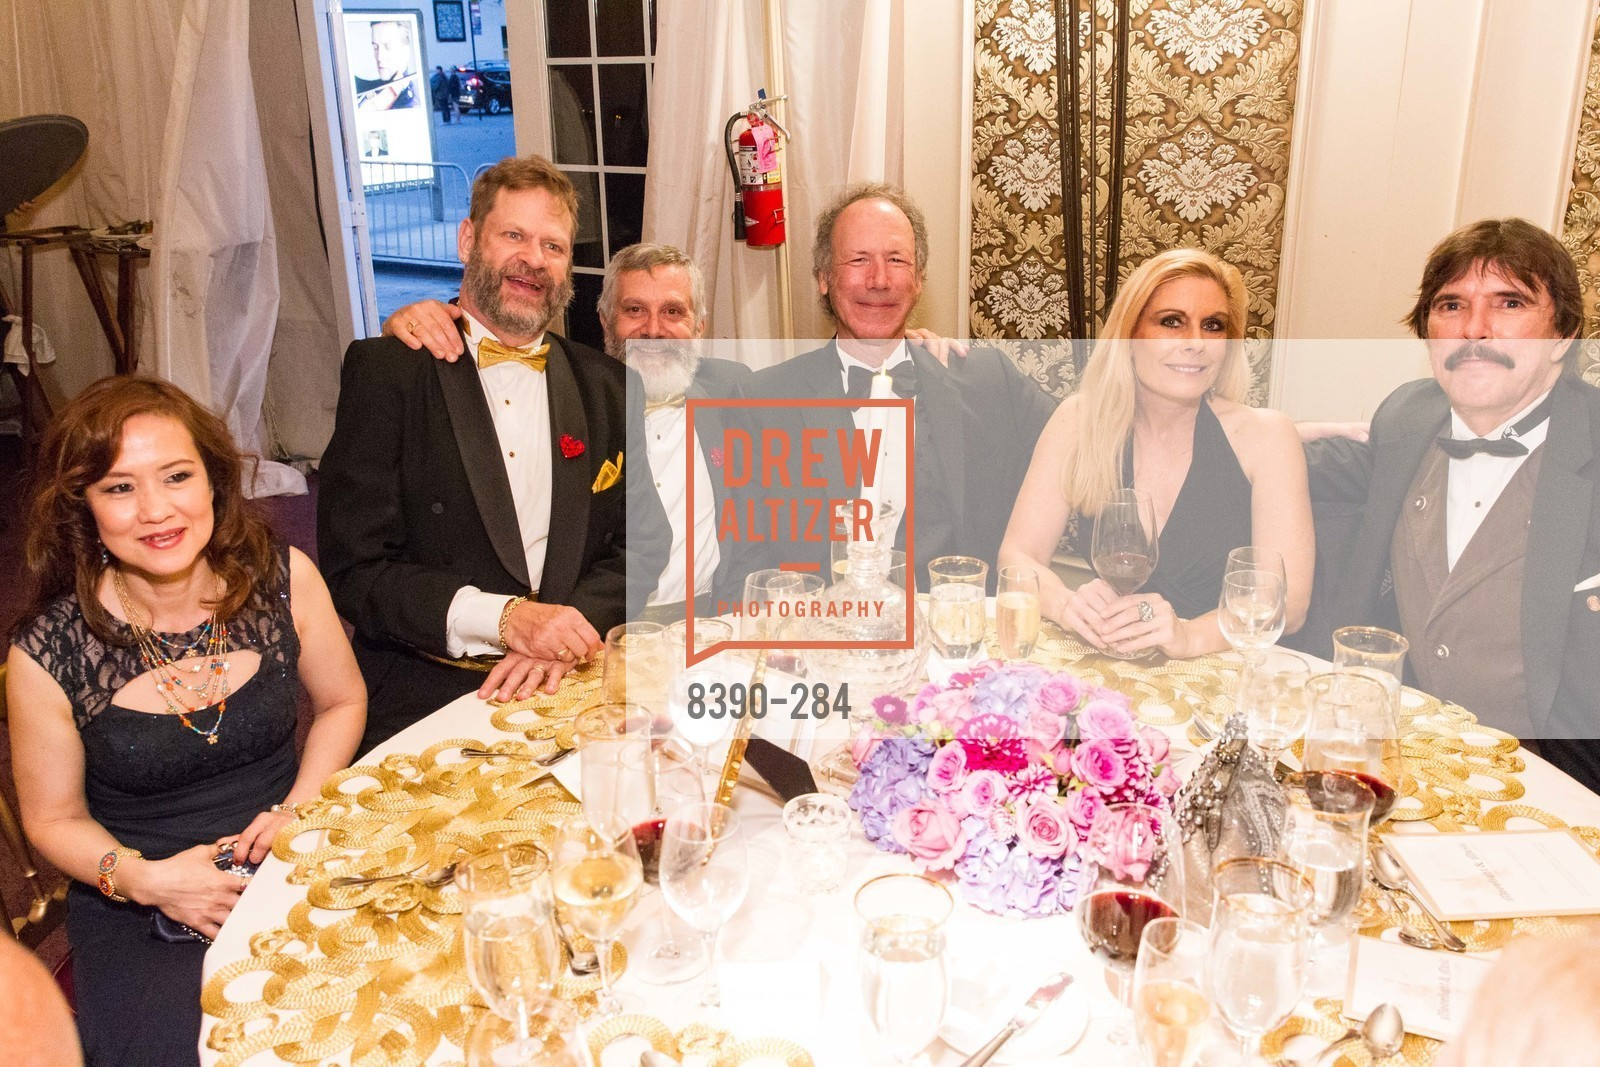 David Laudon, Randy Laroche, Tom Barrett, Jacqueline Jacoby, John Rosin, Opera Ball 2015: Moonlight & Music, War Memorial Opera House. 301 Van Ness Ave, September 11th, 2015,Drew Altizer, Drew Altizer Photography, full-service agency, private events, San Francisco photographer, photographer california